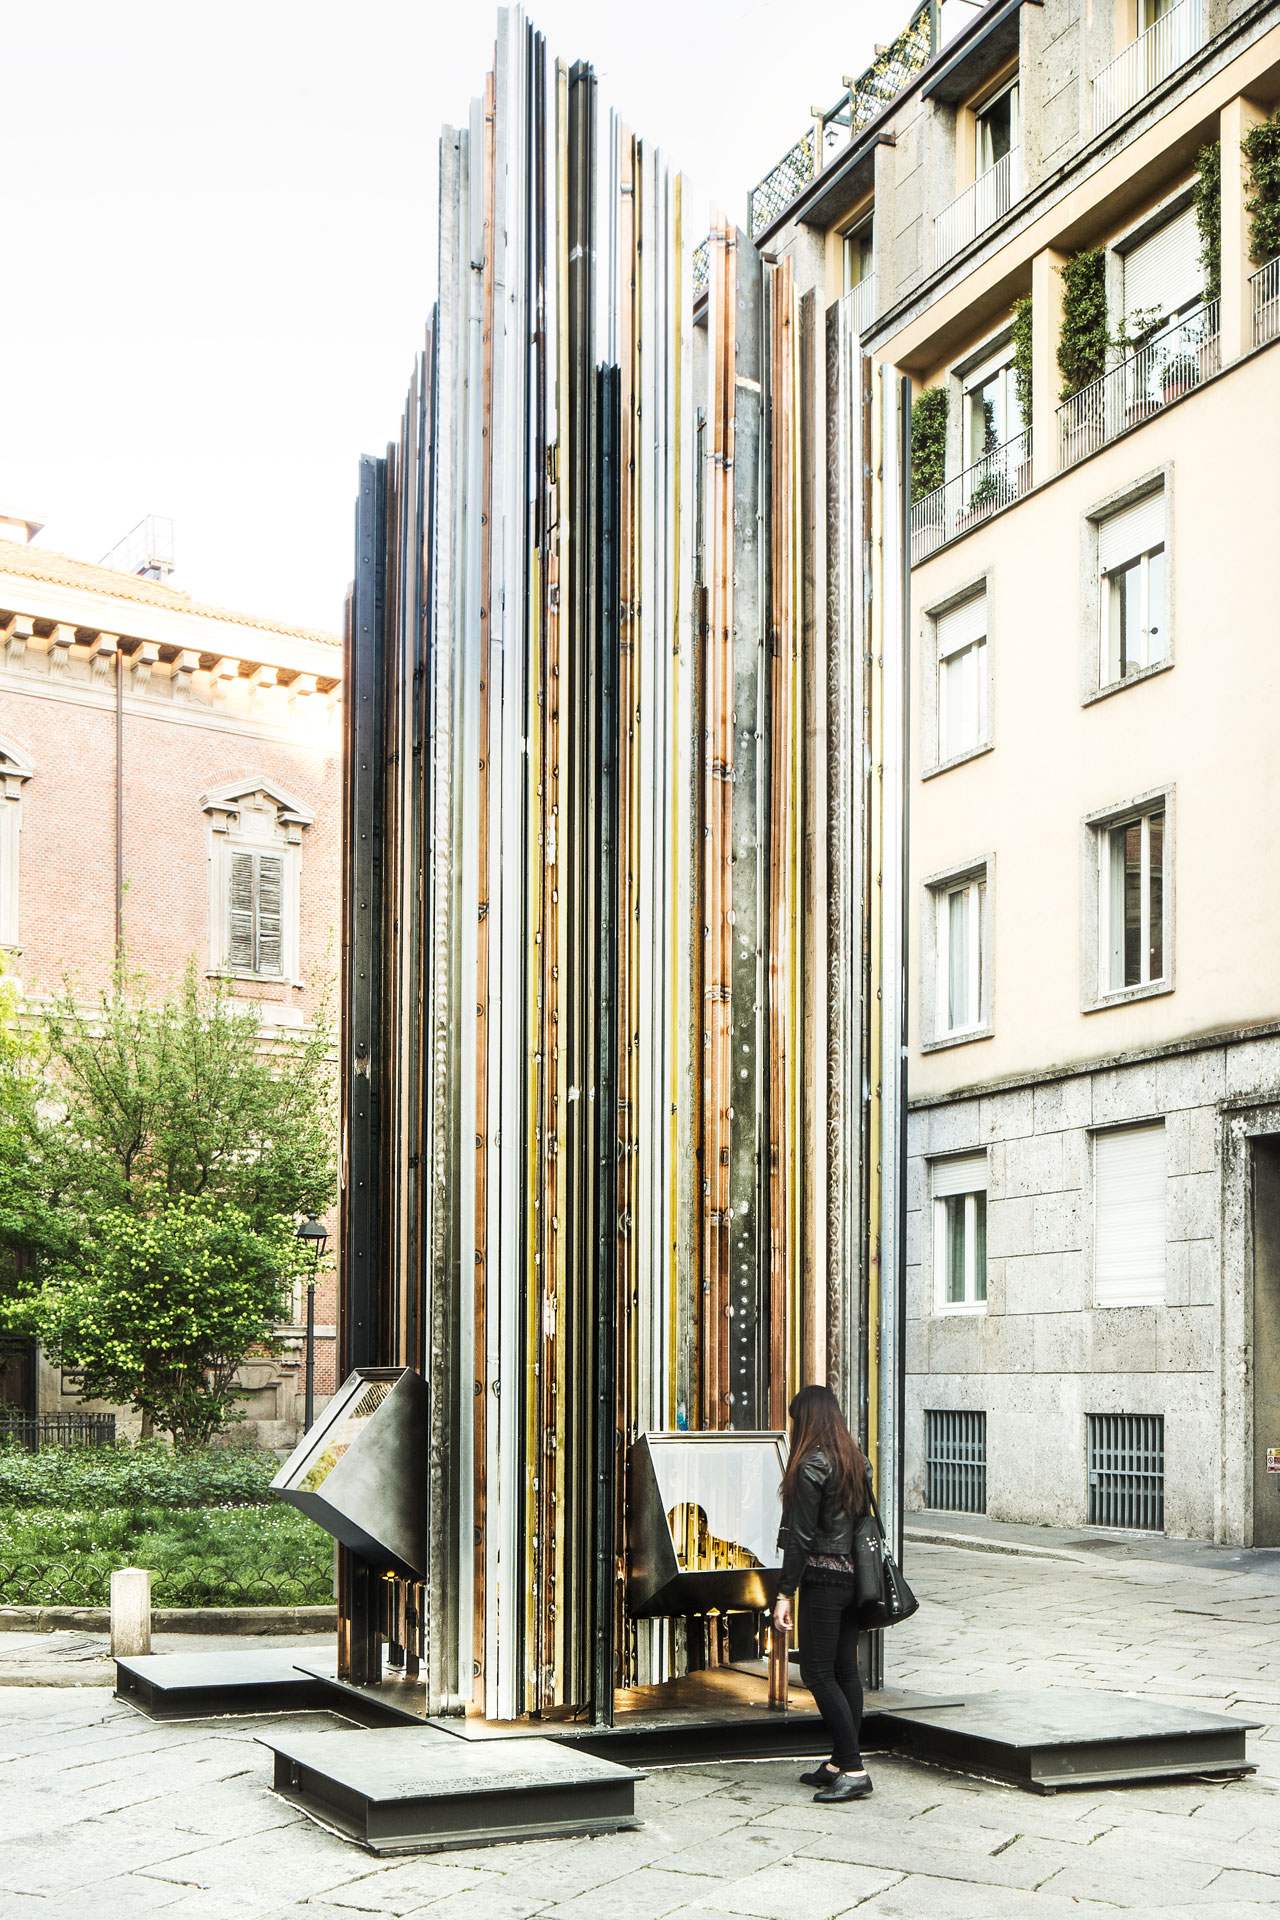 """Scrigno del Cielo (Jewelbox in the Sky): Architecture Inside A Window"" by Cherubino Gambardella and Simona Ottieri (Gambardell Architetti) for Capoferri in the Brera District.Photo © Filippo Romano."